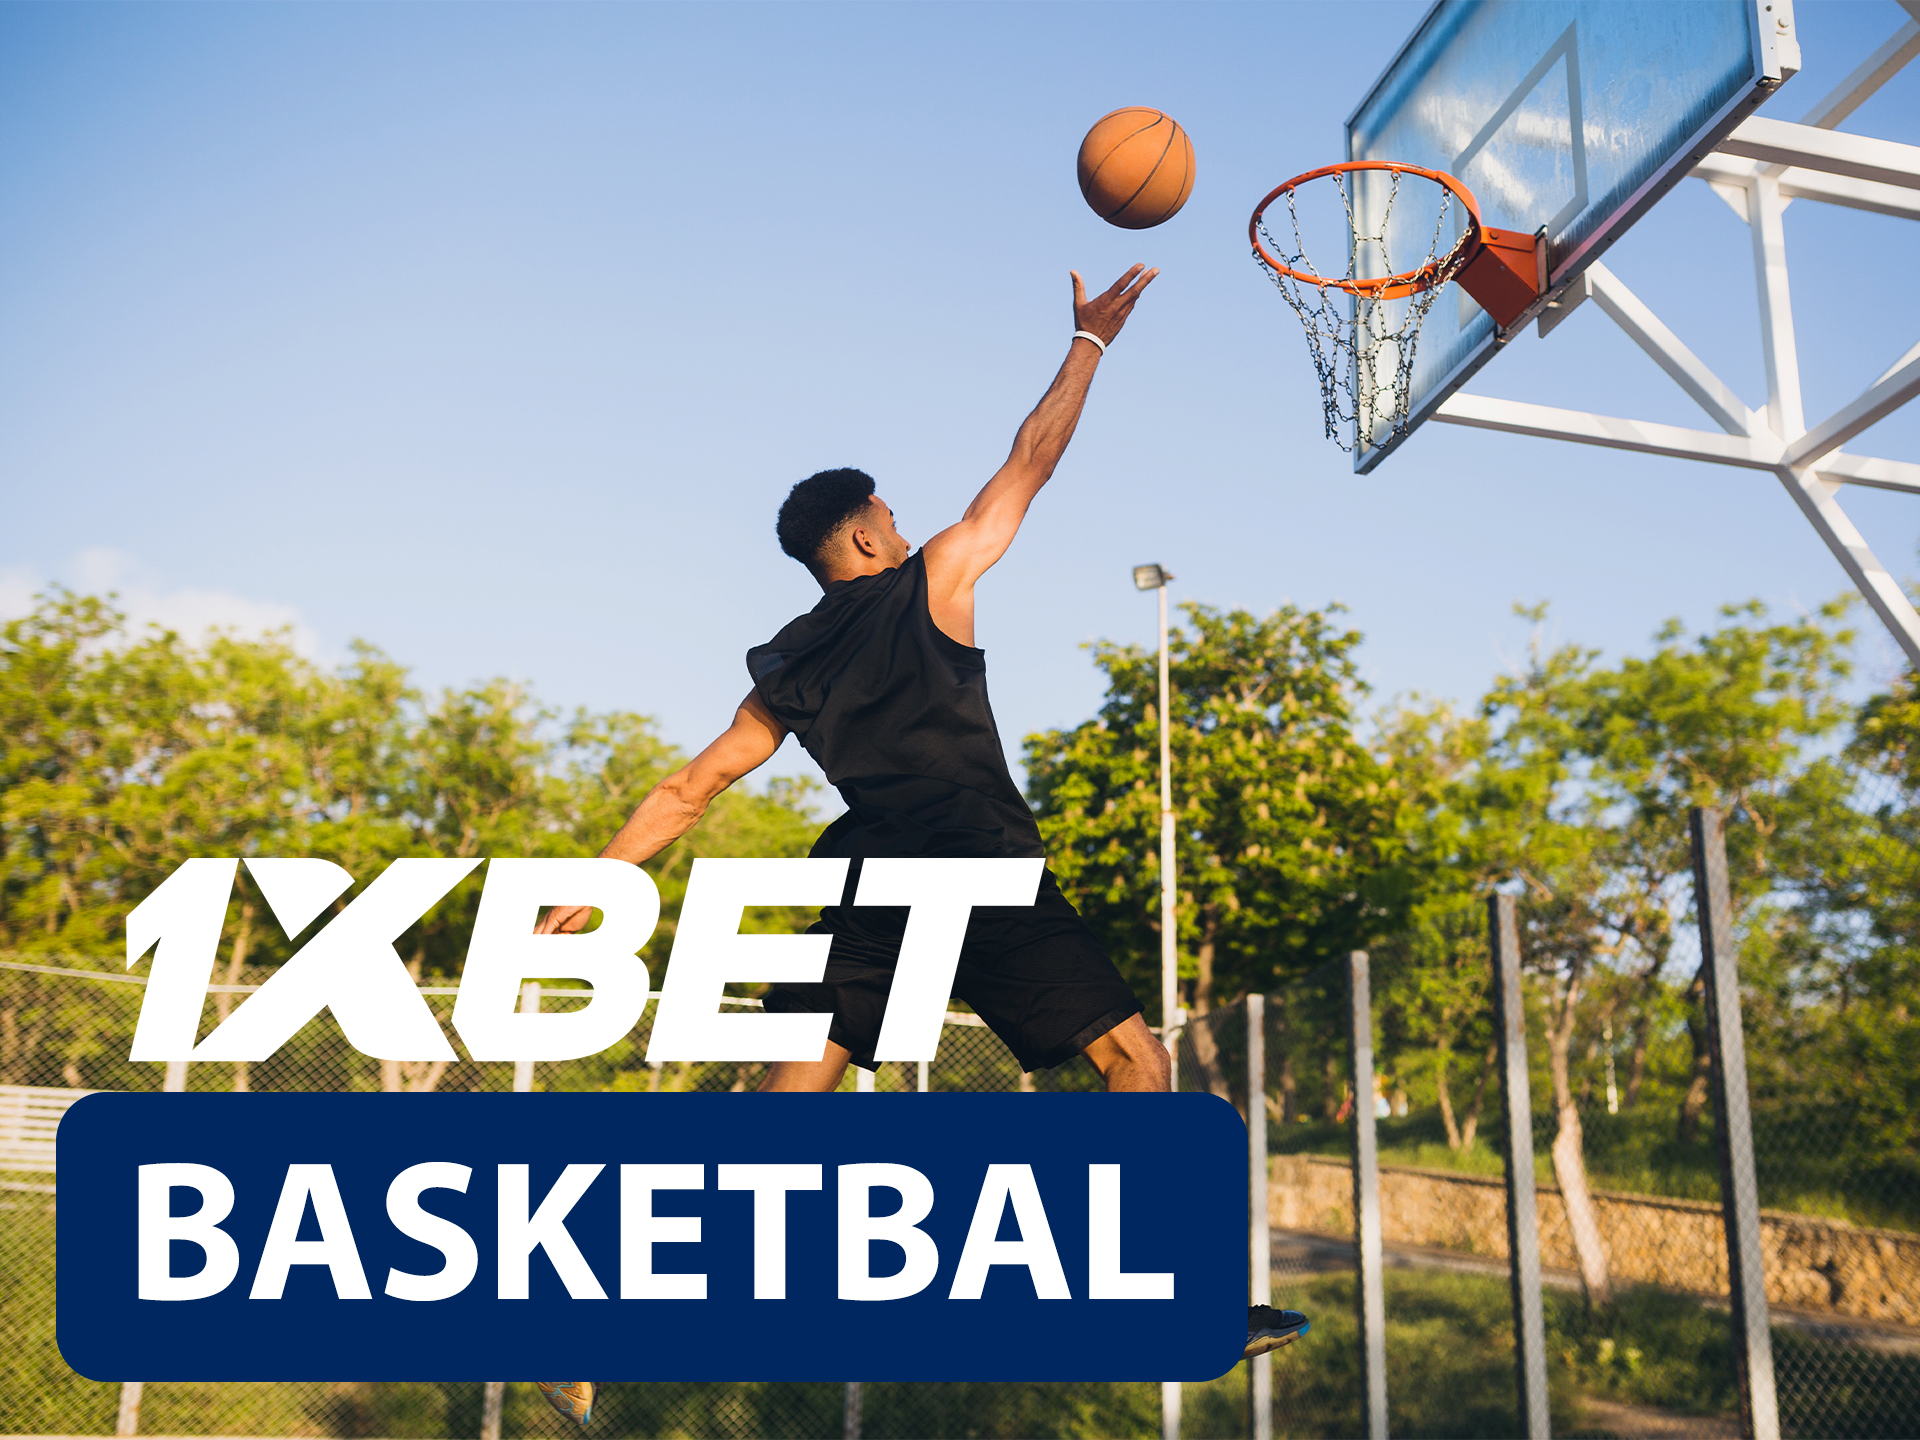 Start betting on basketball with 1xBet.